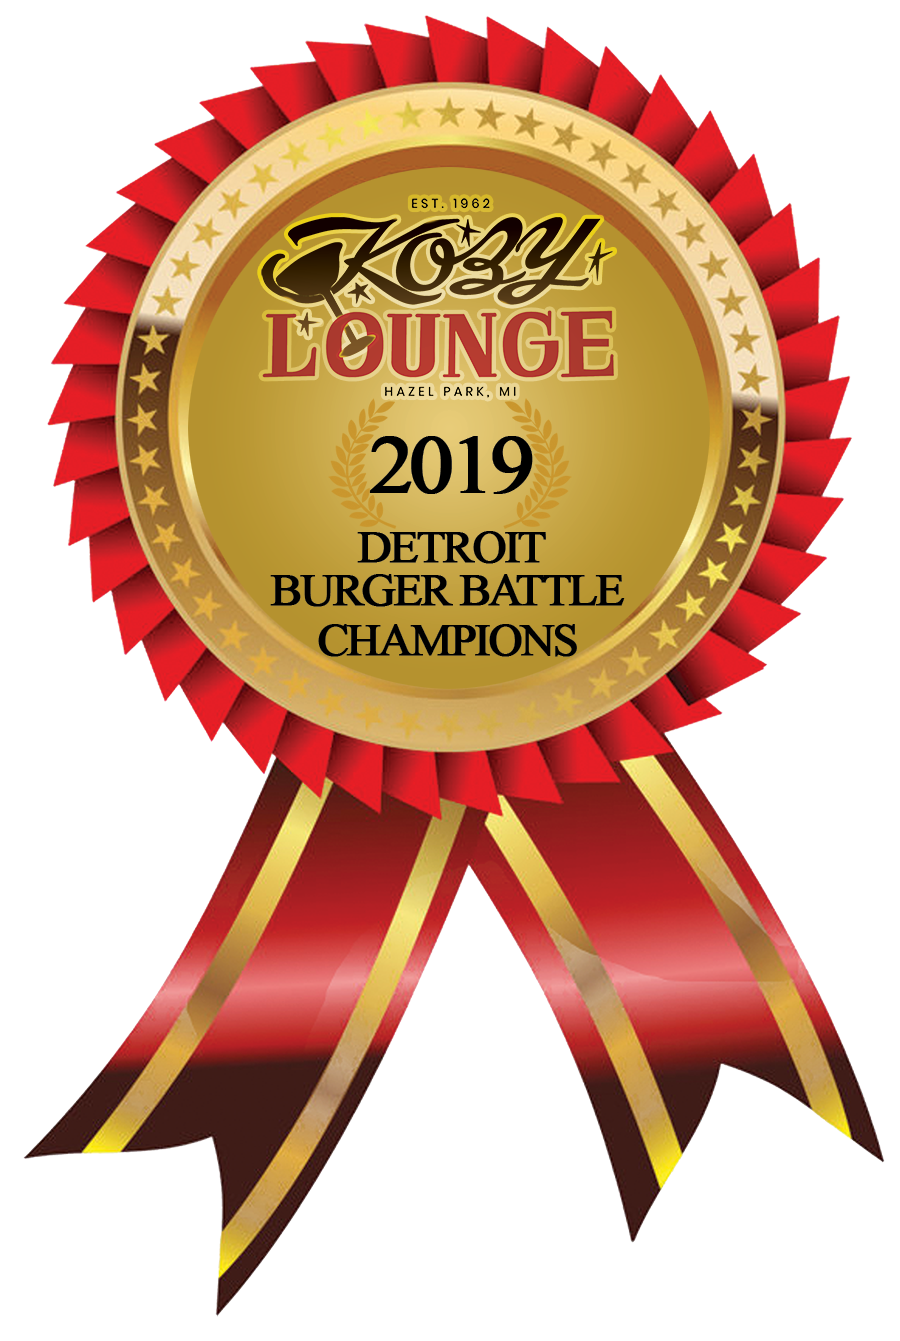 2019 Detroit Burger Battle Champion